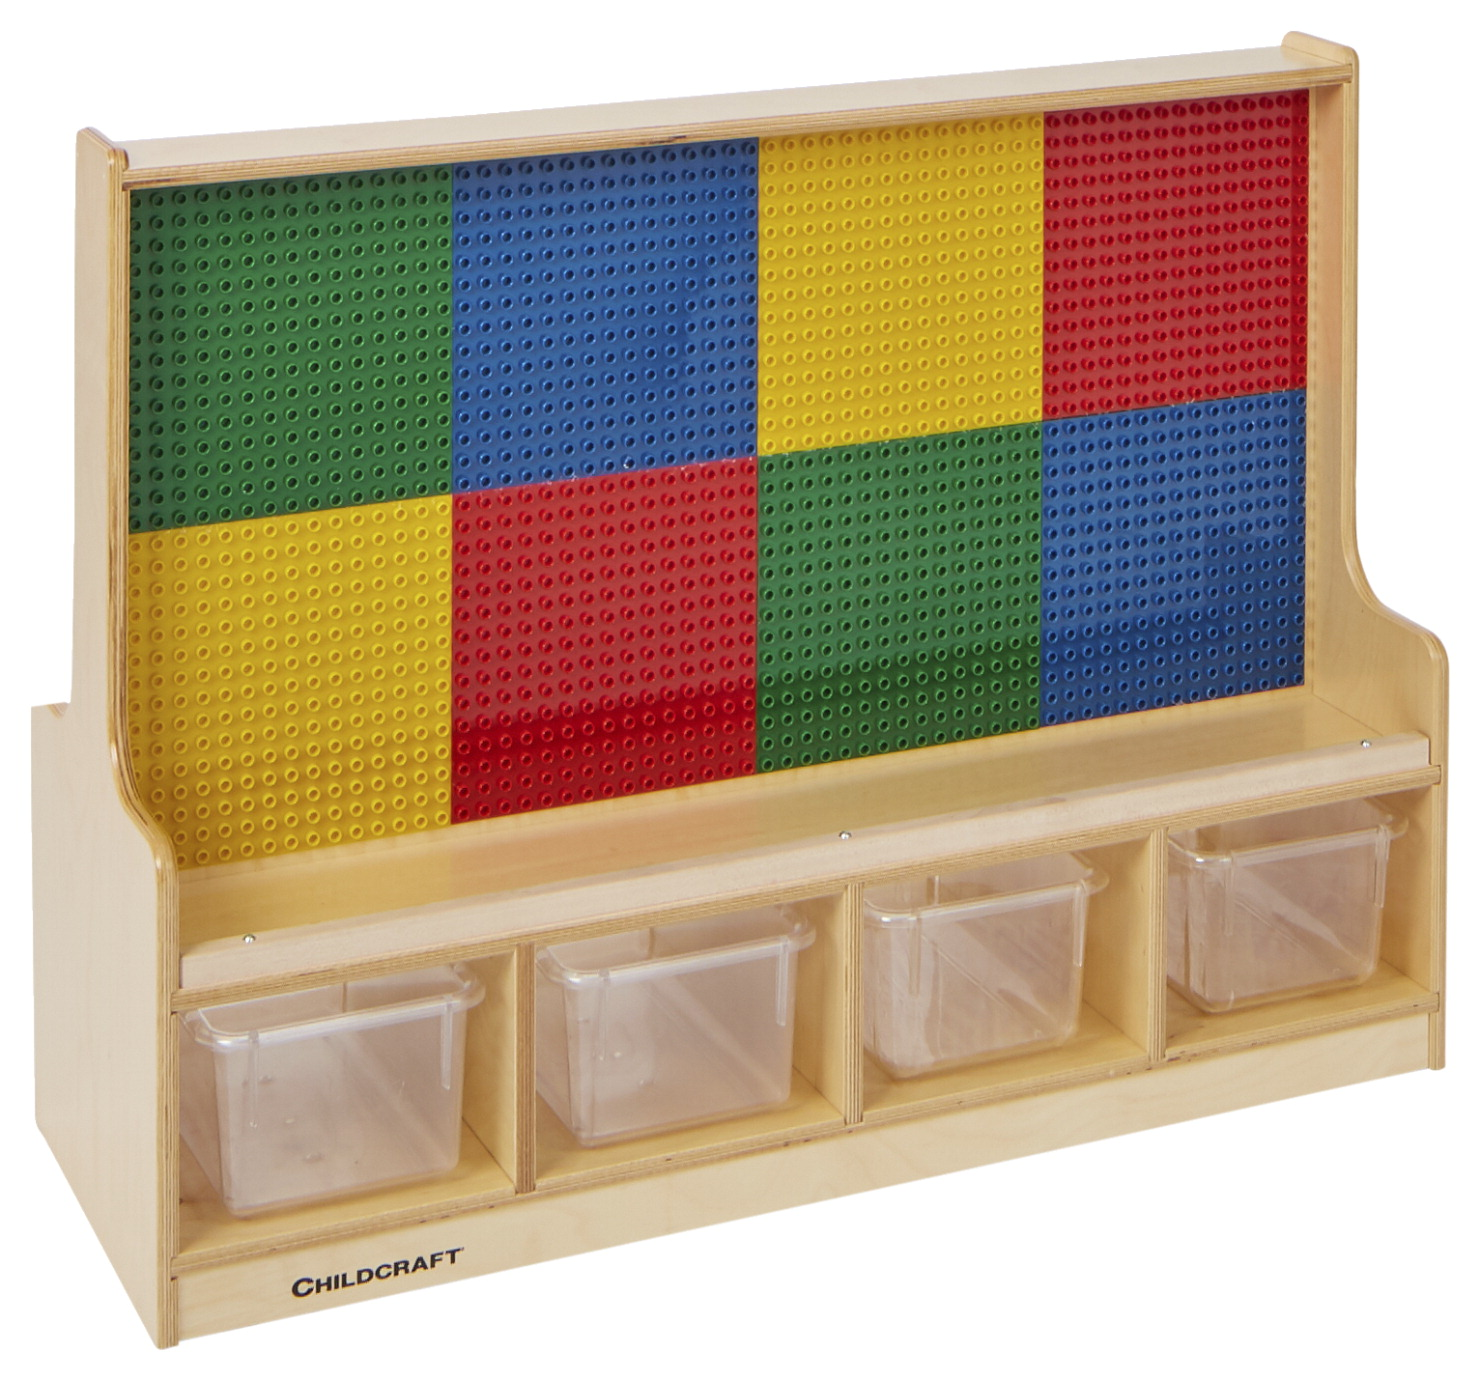 Childcraft Dual-Sided Building Brick Activity Center with Clear Trays, Preschool Grids, 39-1/2 x 14-1/4 x 30 Inches